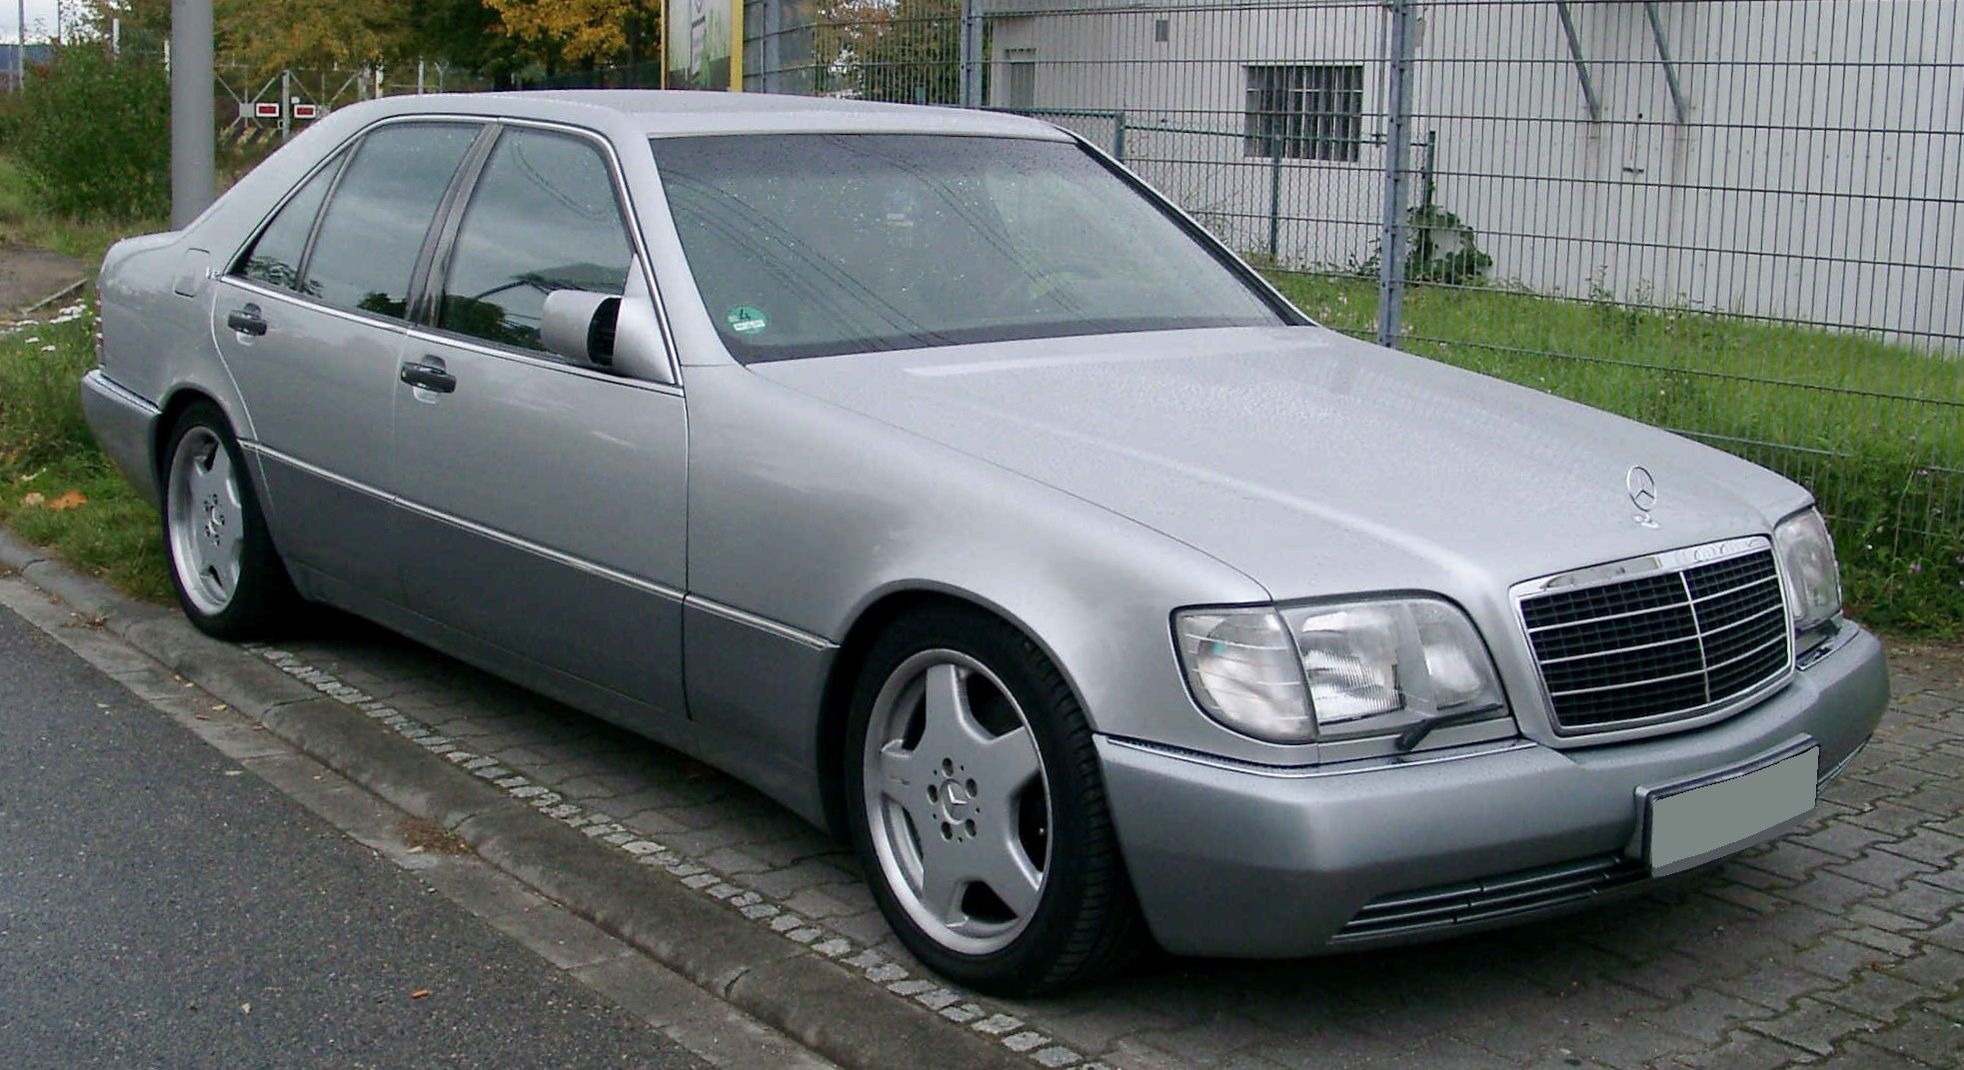 Mercedes benz w140 the complete information and online sale with mercedes benz w140 the complete information and online sale with free shipping order and buy now for the lowest price in the best online store fandeluxe Choice Image